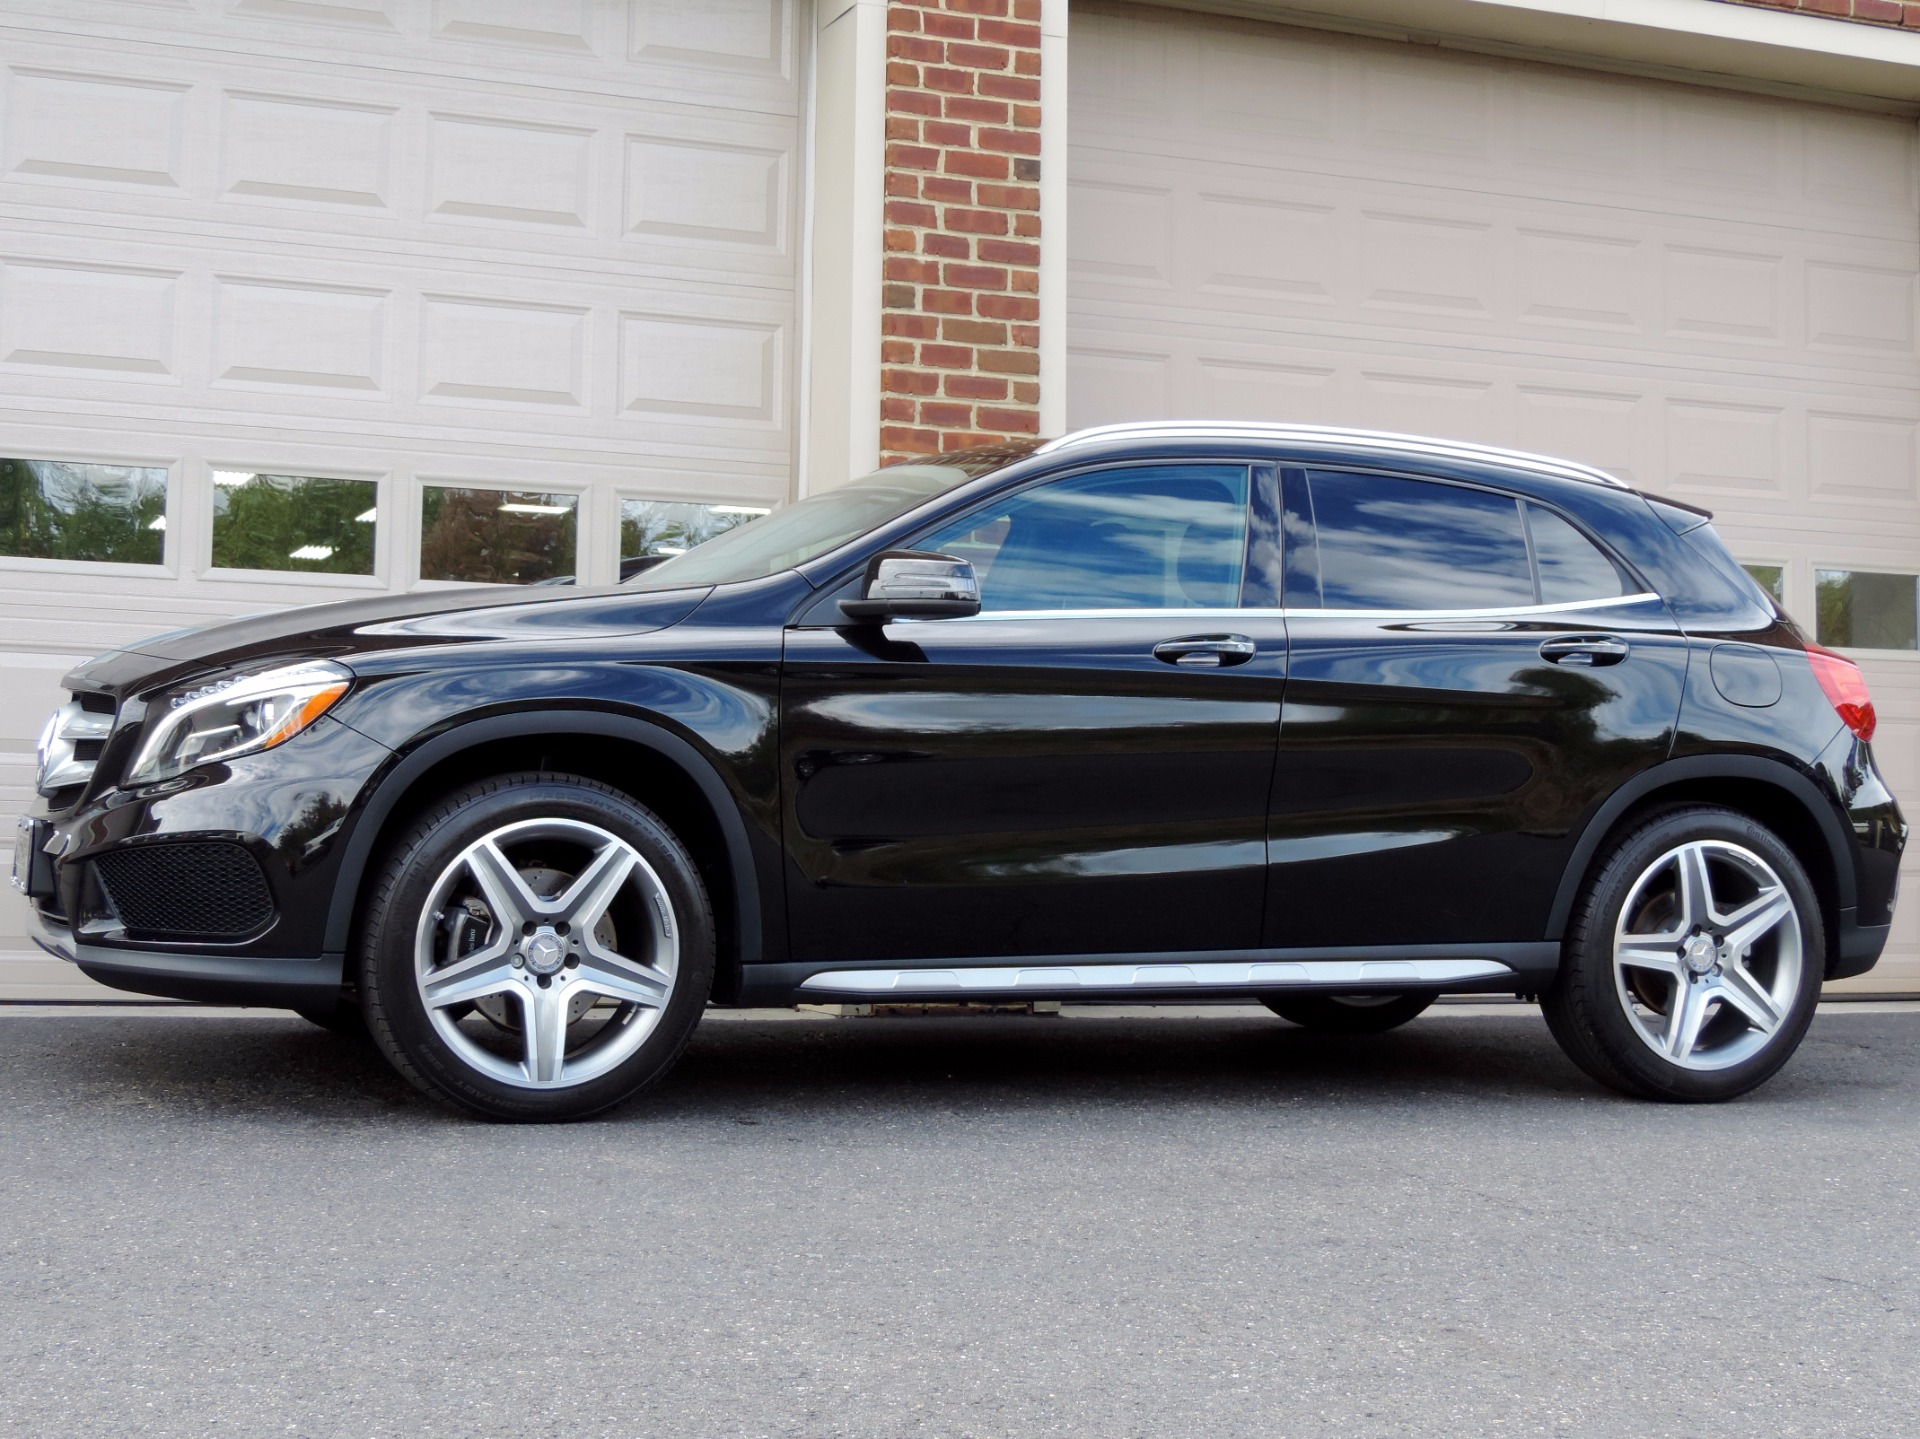 2015 mercedes benz gla gla 250 4matic stock 092522 for for 2015 mercedes benz gla 250 for sale